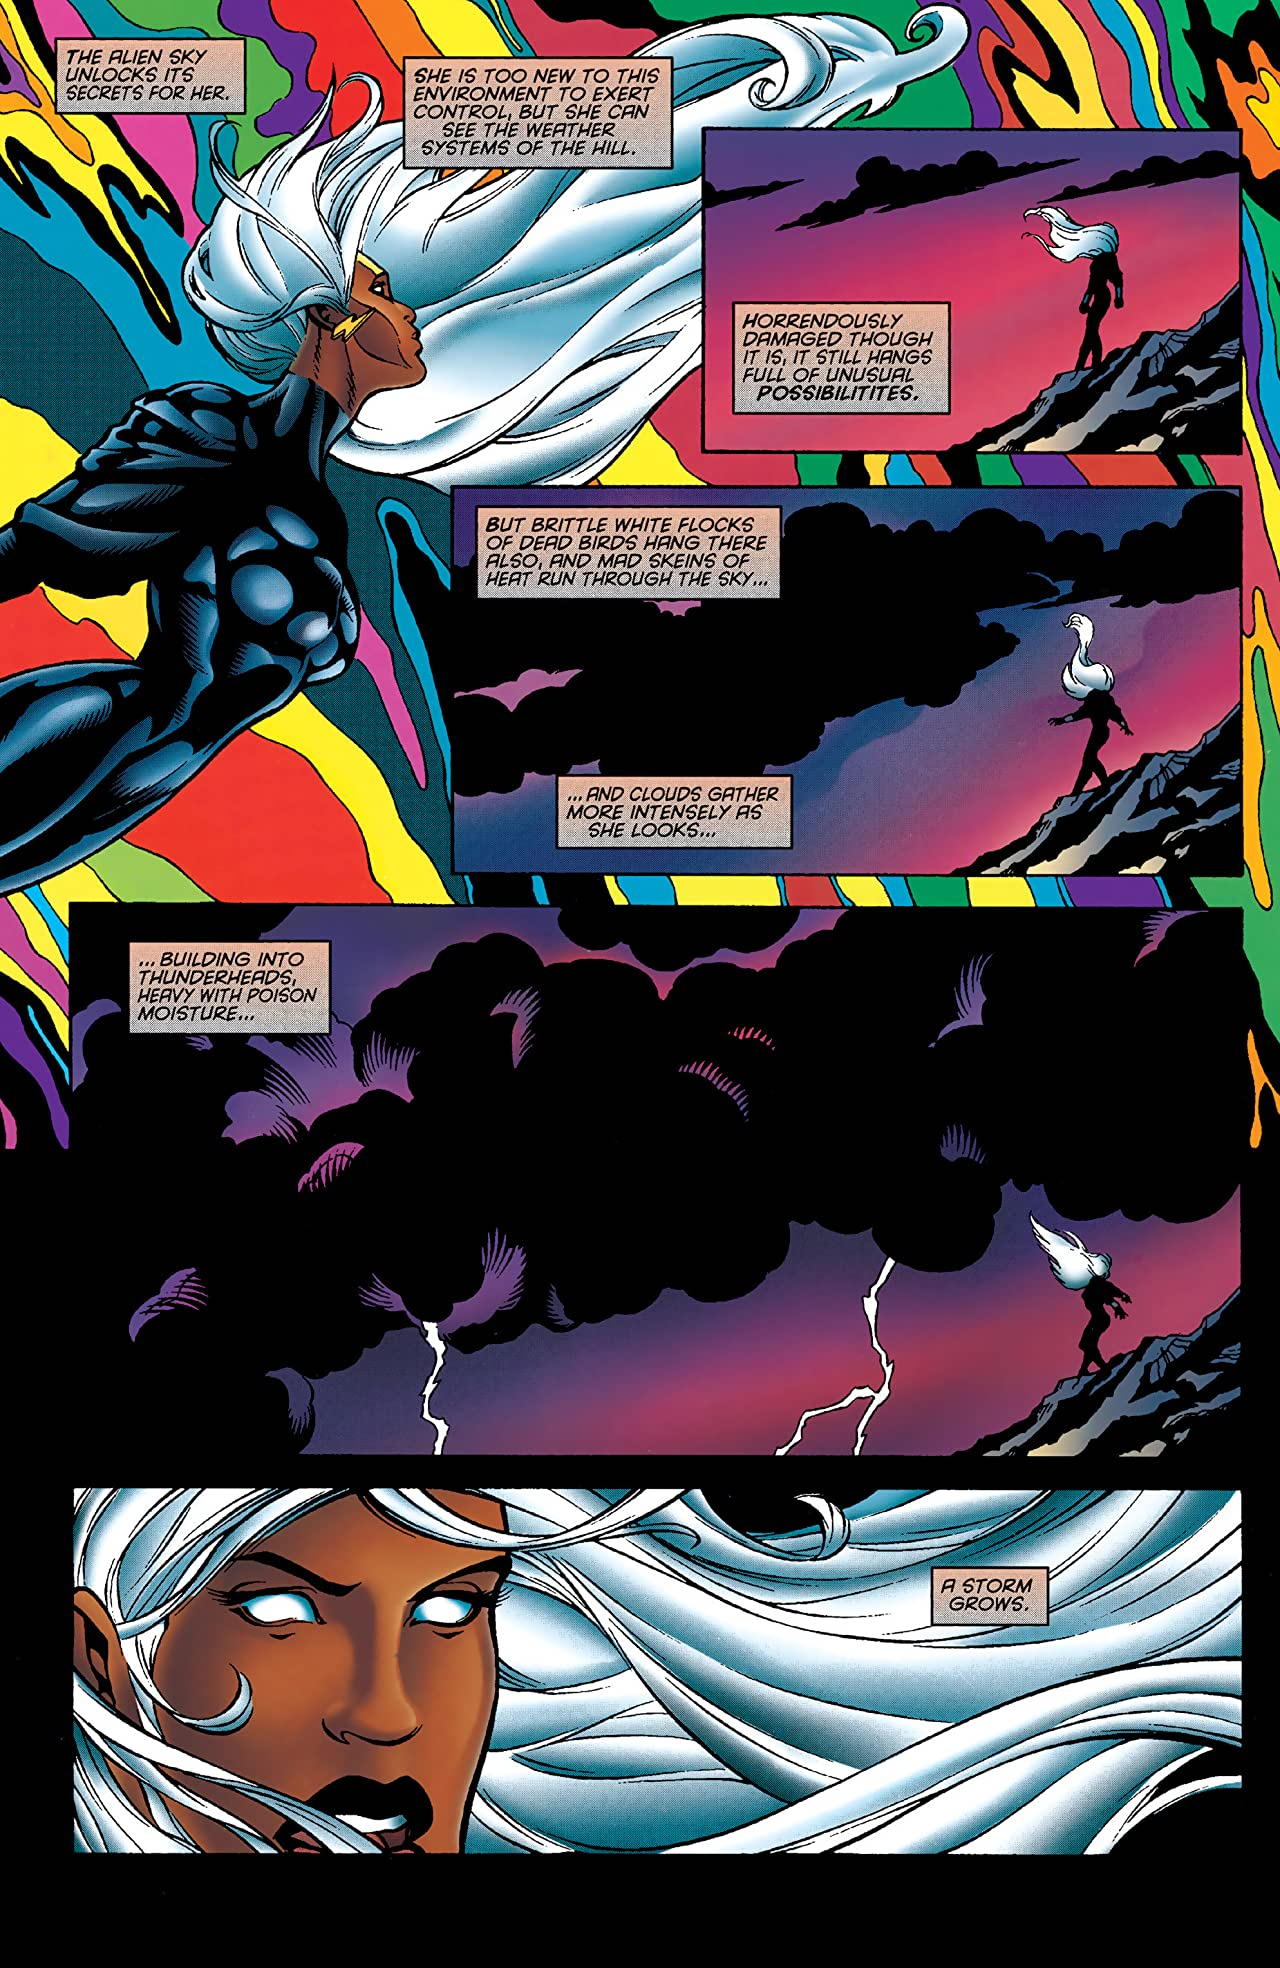 Storm (1996) #2 (of 4)